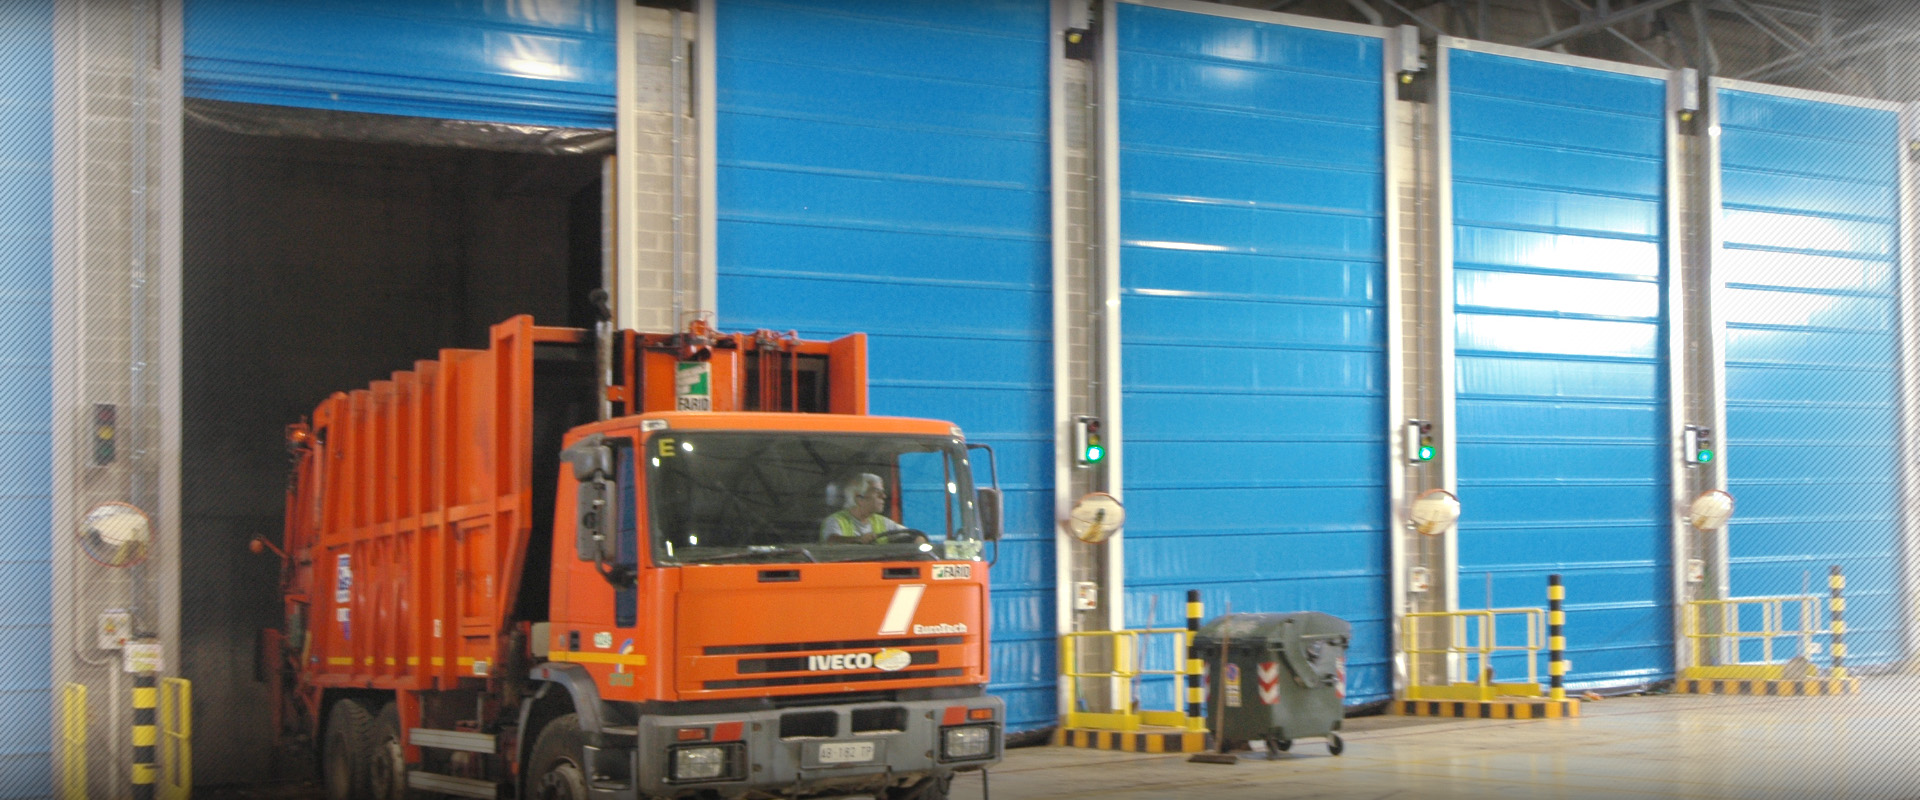 testate/Rapid DOORS FOR RECYCLING AND WASTE TREATMENT5 .jpg